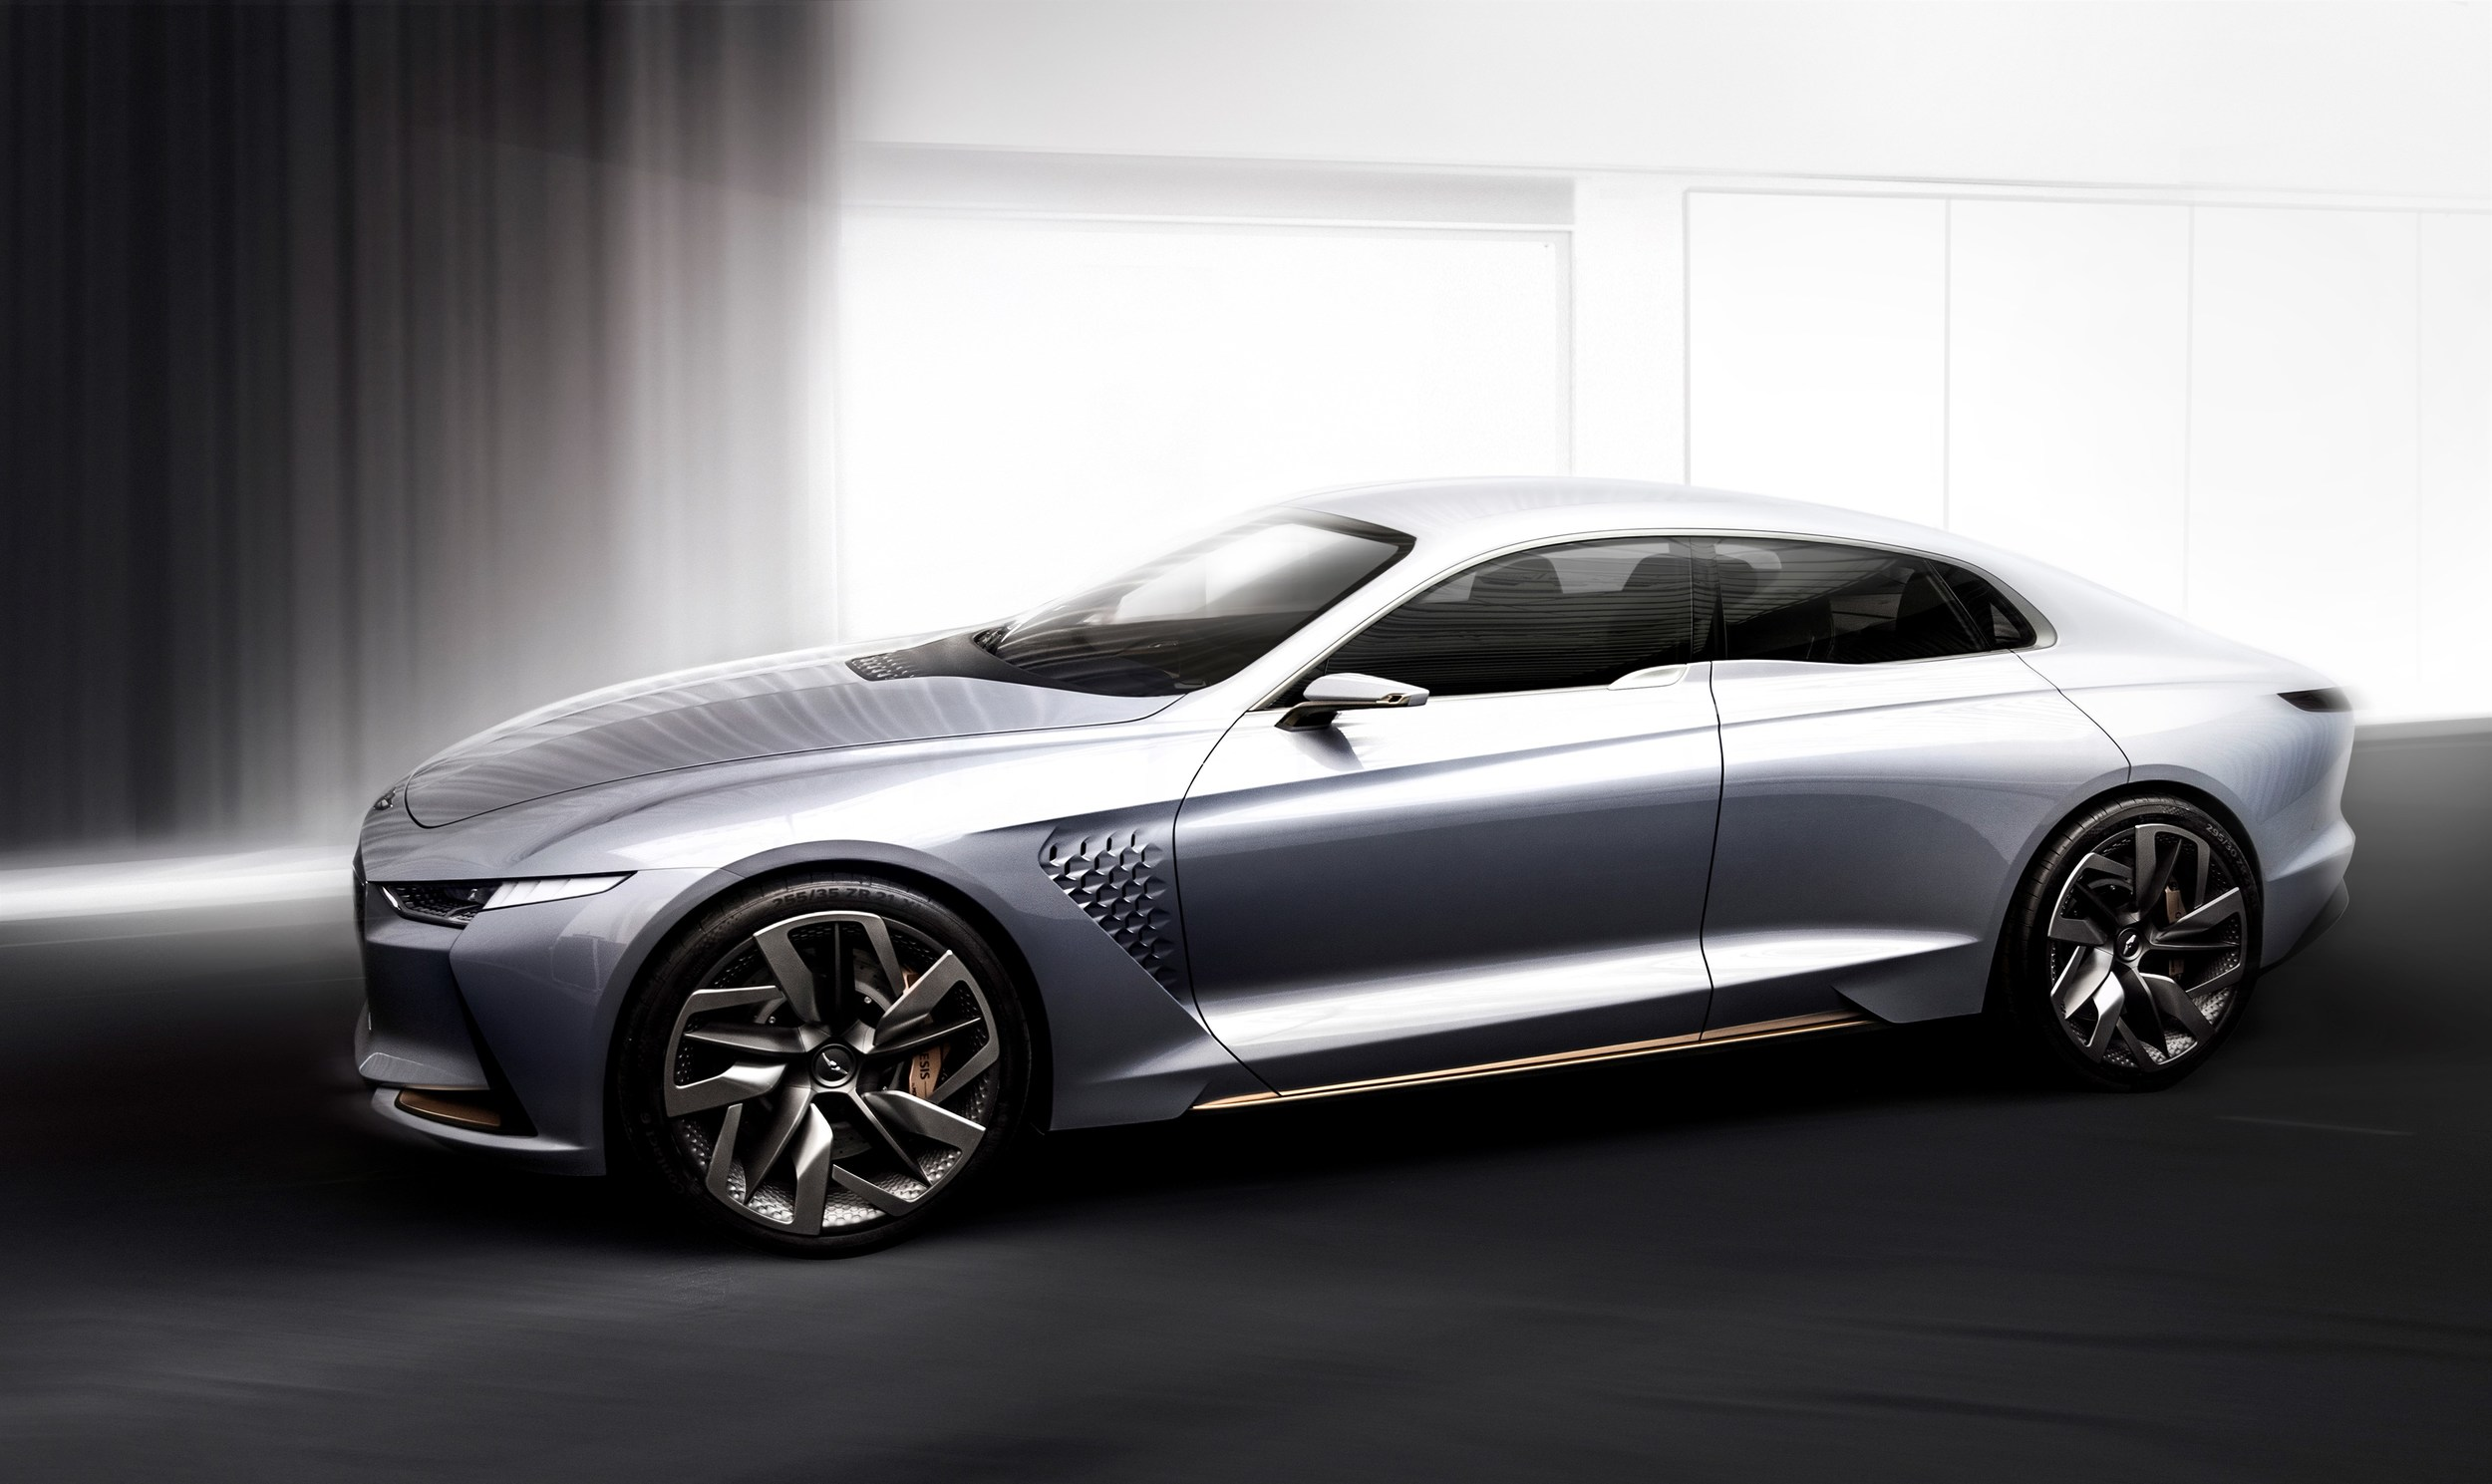 2018 genesis sport coupe.  coupe genesis new york concept preview for the 2018 g70 inside genesis sport coupe 8